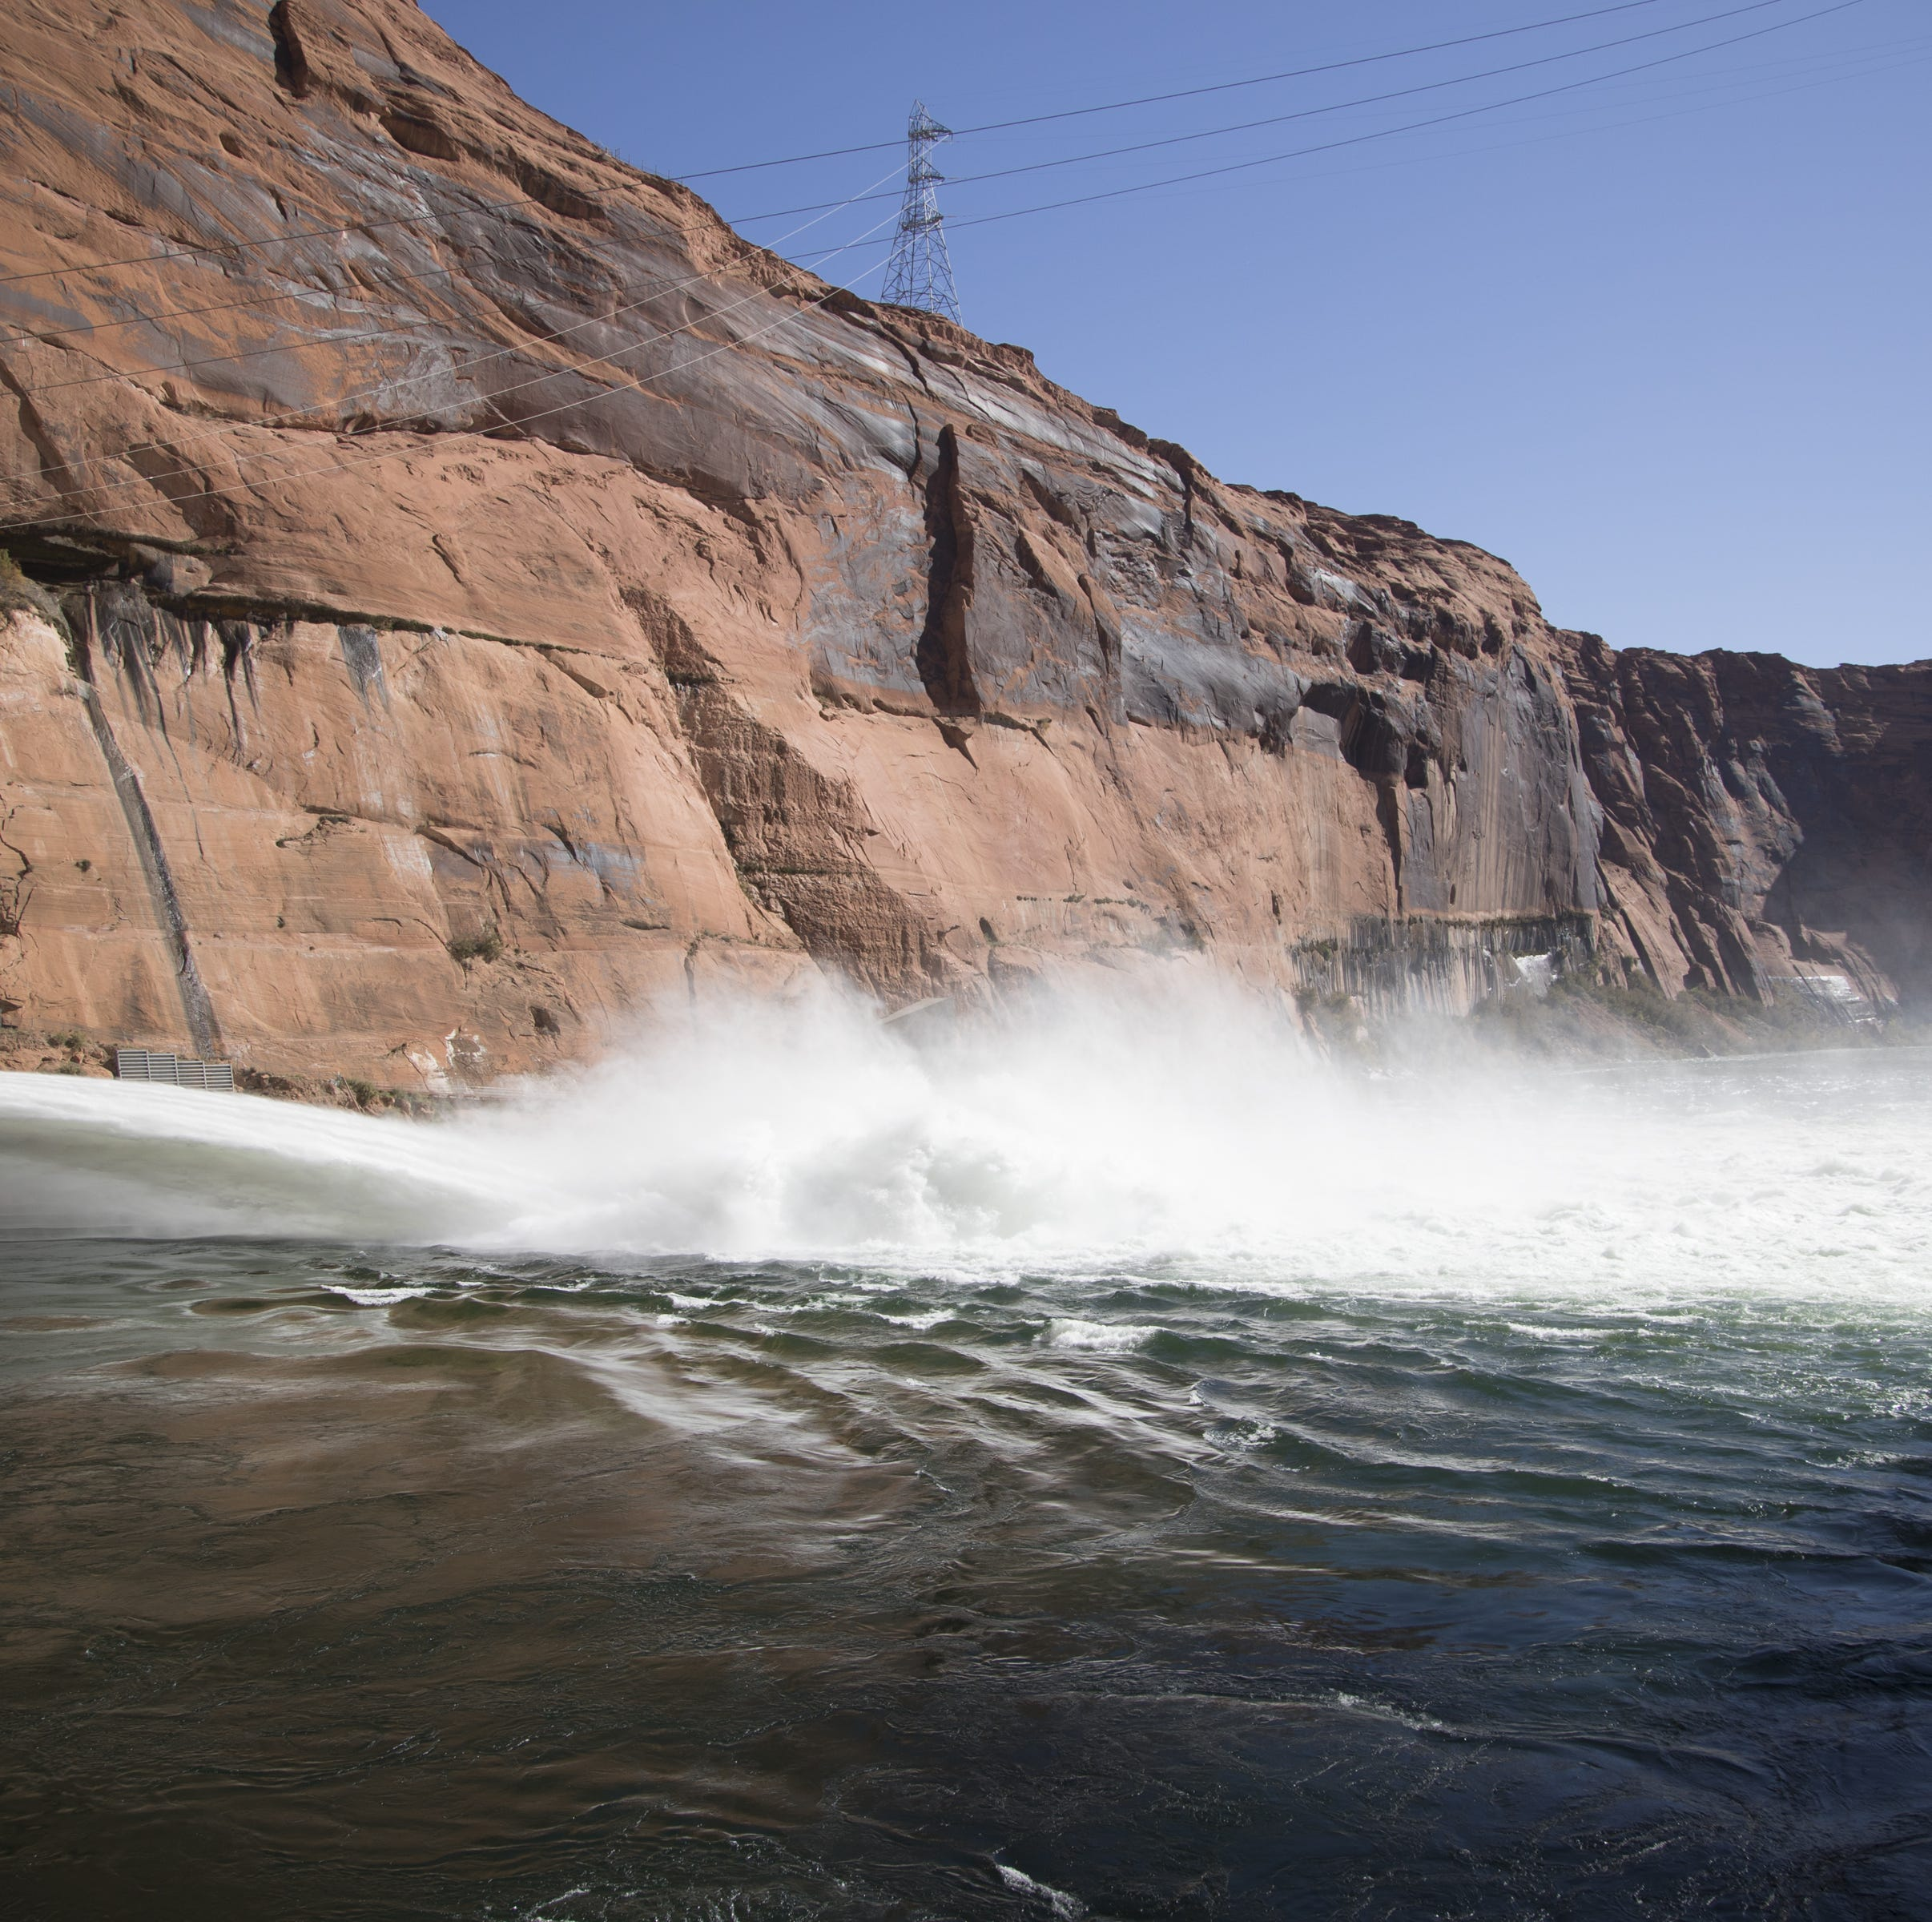 Water is released from Glen Canyon Dam through a bypass tube on Nov. 5, 2018, during a high-flow experiment. The flood will help move sand and sediment down the Colorado River the way the river's natural flows did before construction of Glen Canyon Dam.